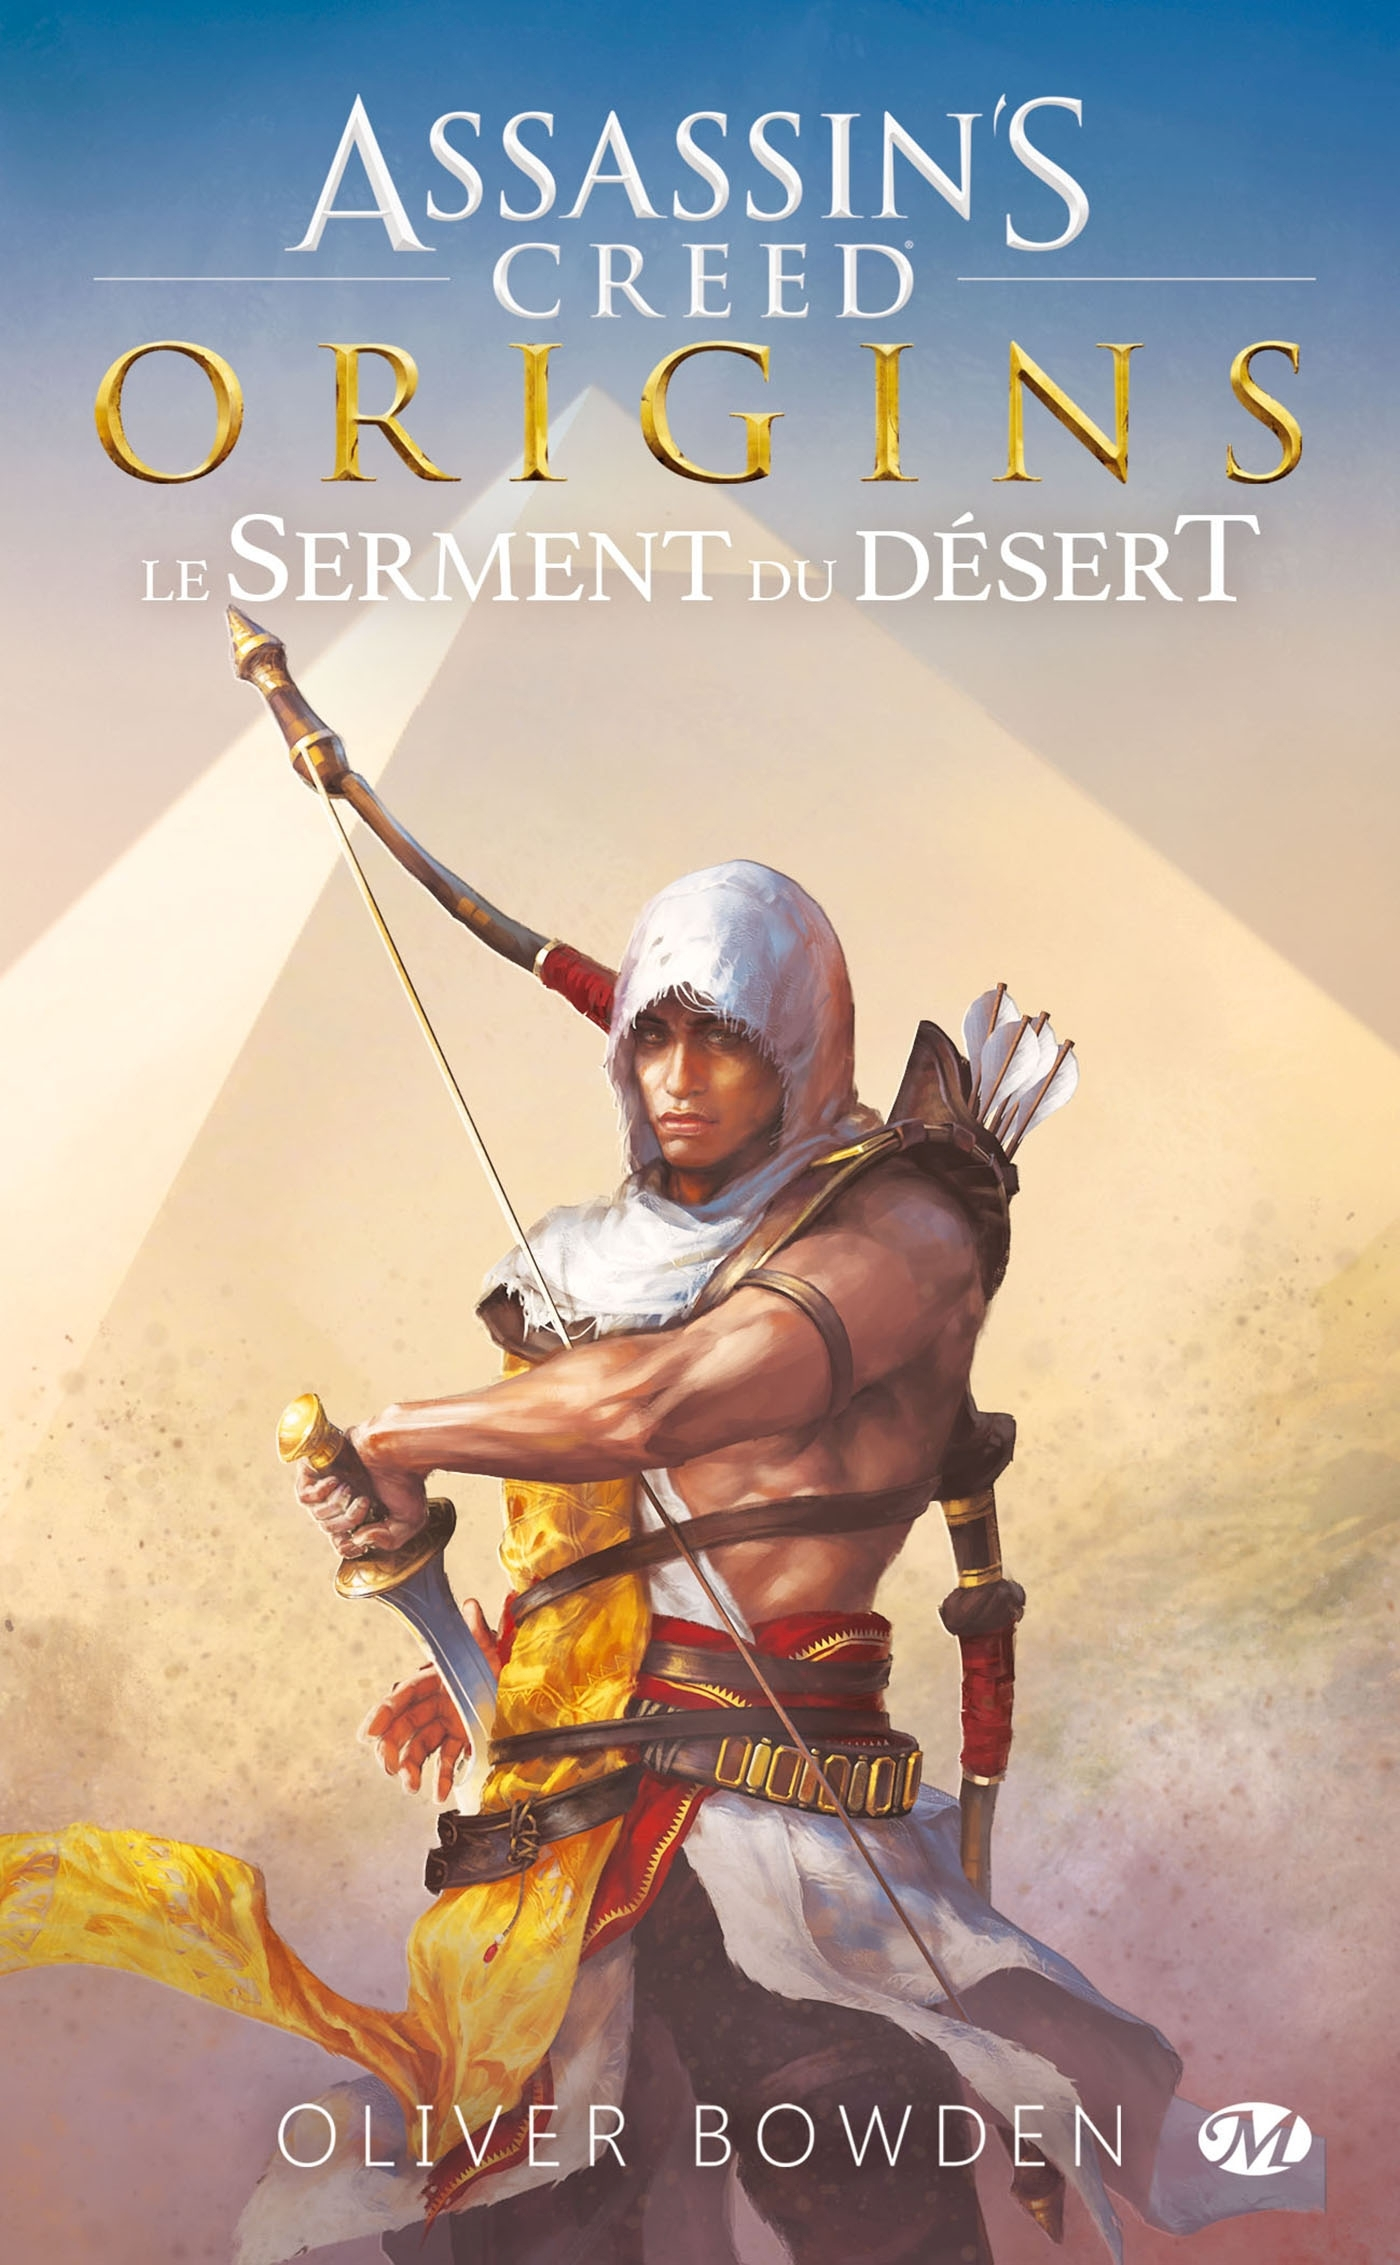 ASSASSIN'S CREED : ASSASSIN'S CREED ORIGINS: LE SERMENT DU DESERT